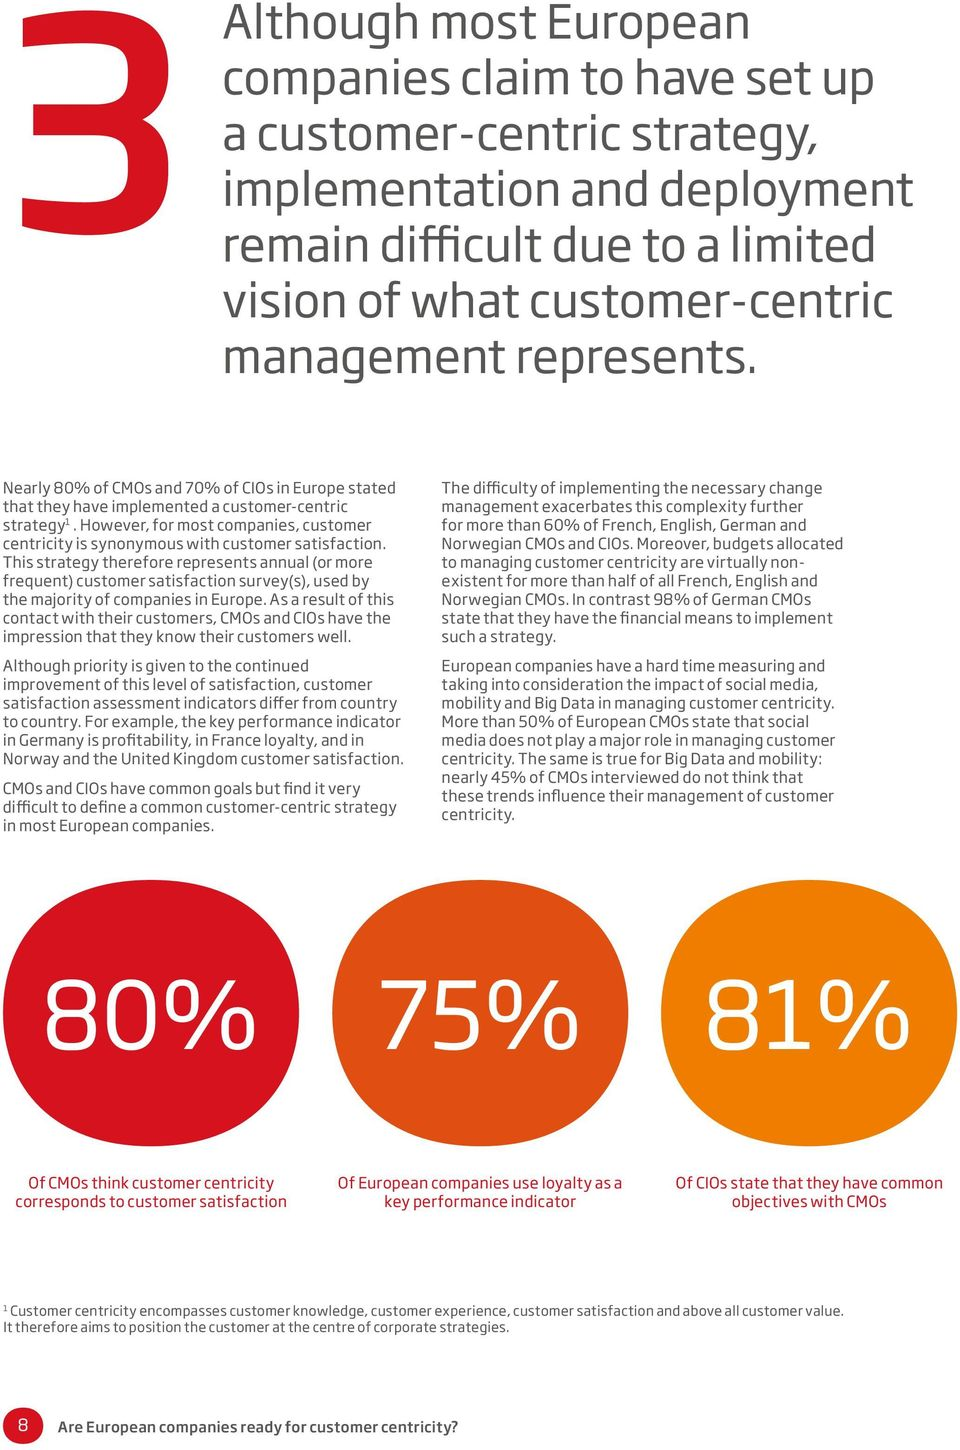 However, for most companies, customer centricity is synonymous with customer satisfaction.